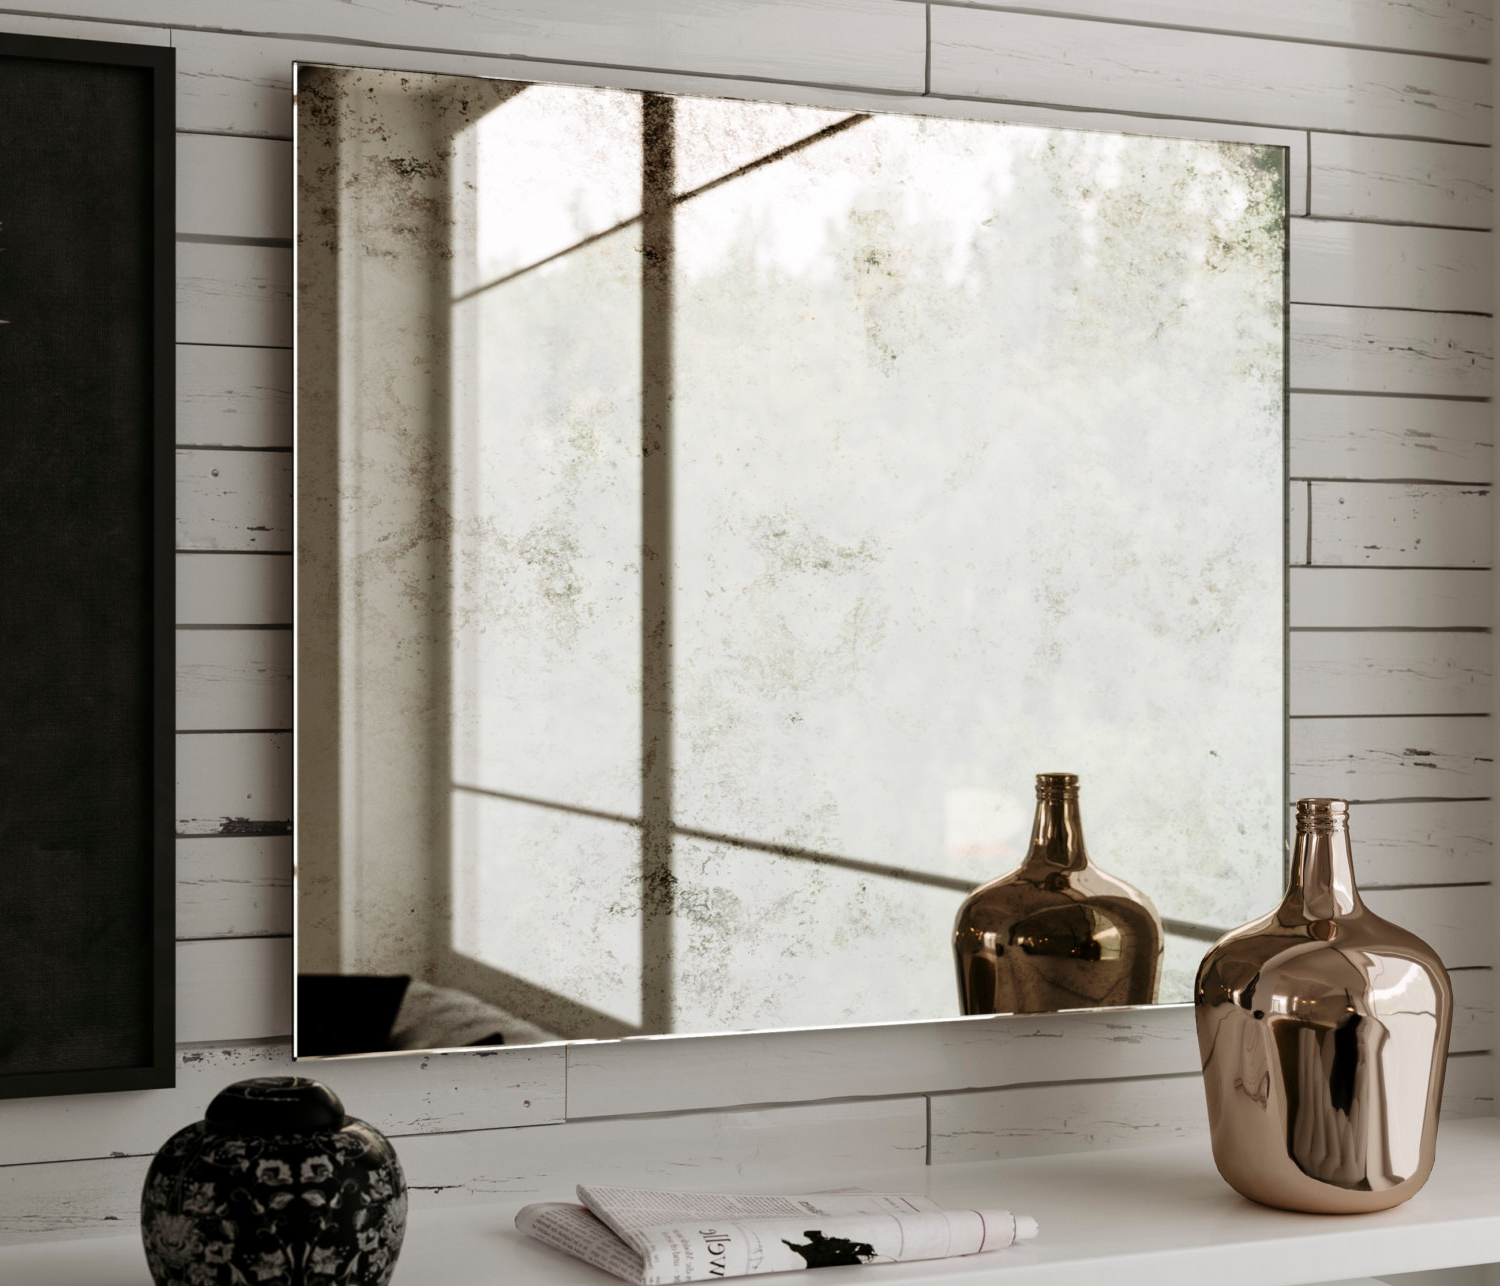 """2020 Frameless Large Wall Mirrors Inside 18 X 33"""" Hanging, Large Frameless Antiqued Wall Mirror With European Pattern. 1940s And 1950s Style Hanging Mirror (View 14 of 20)"""